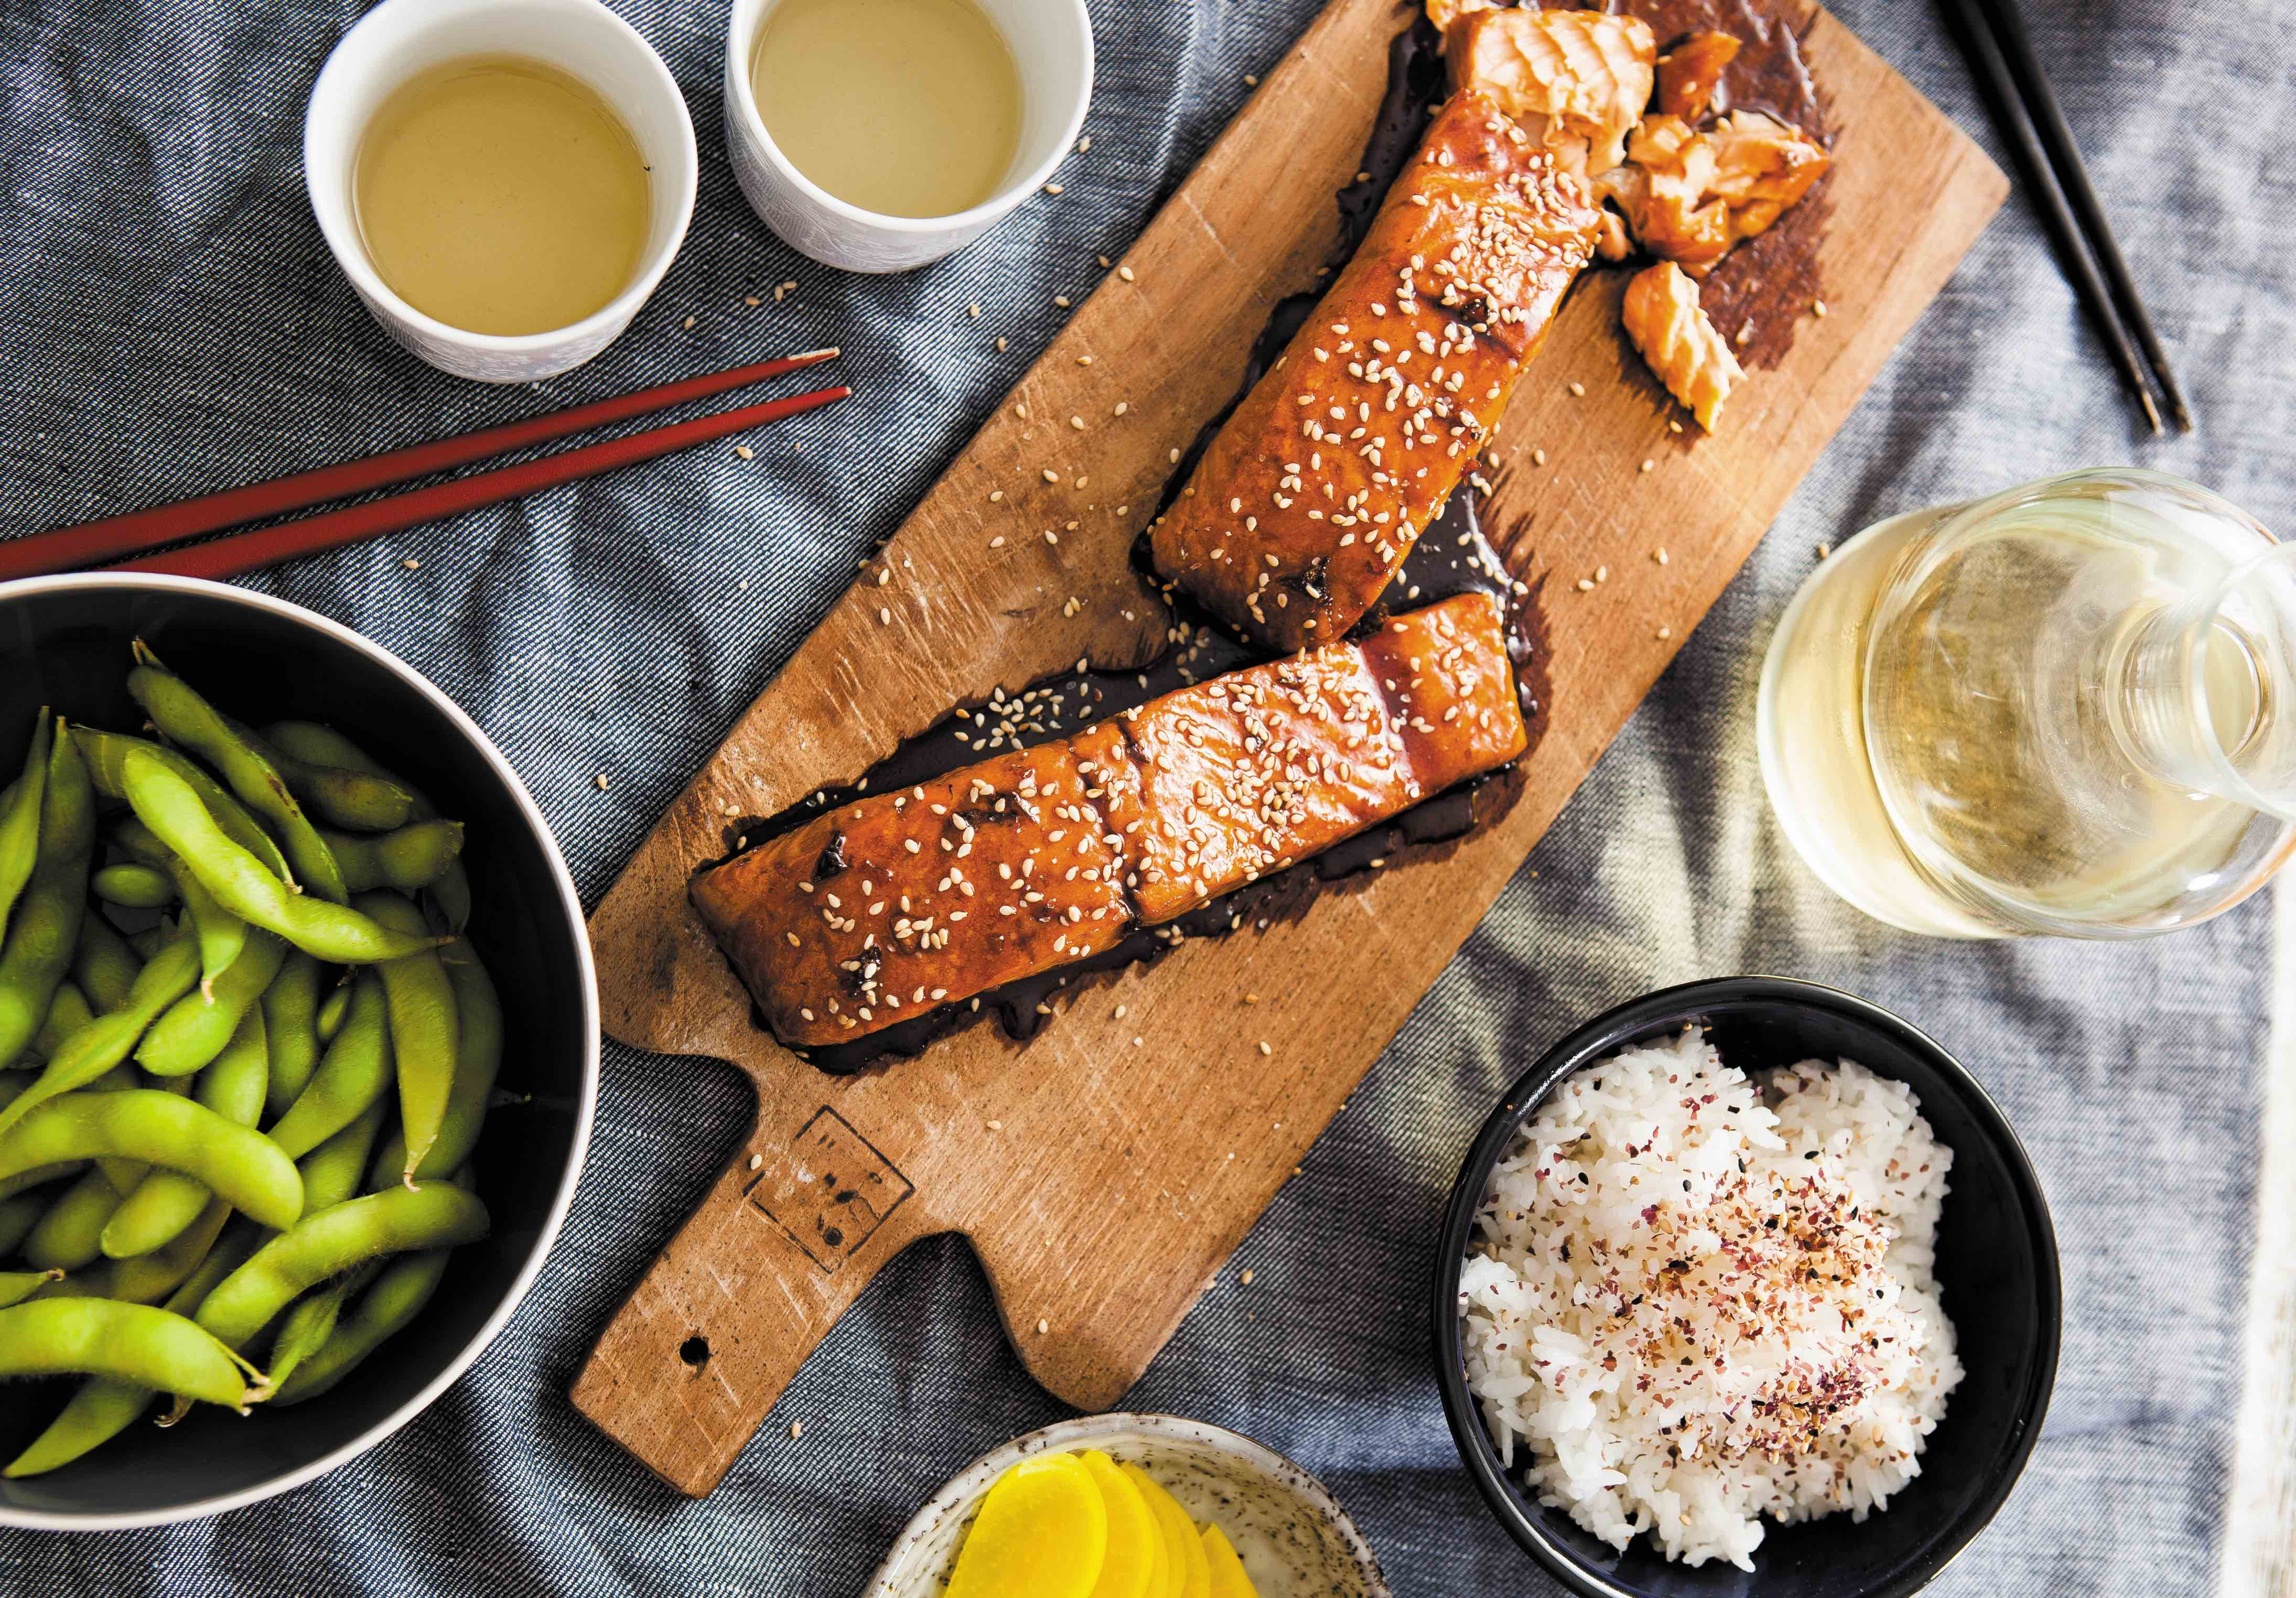 A recipe for salmon teriyaki and miso soup